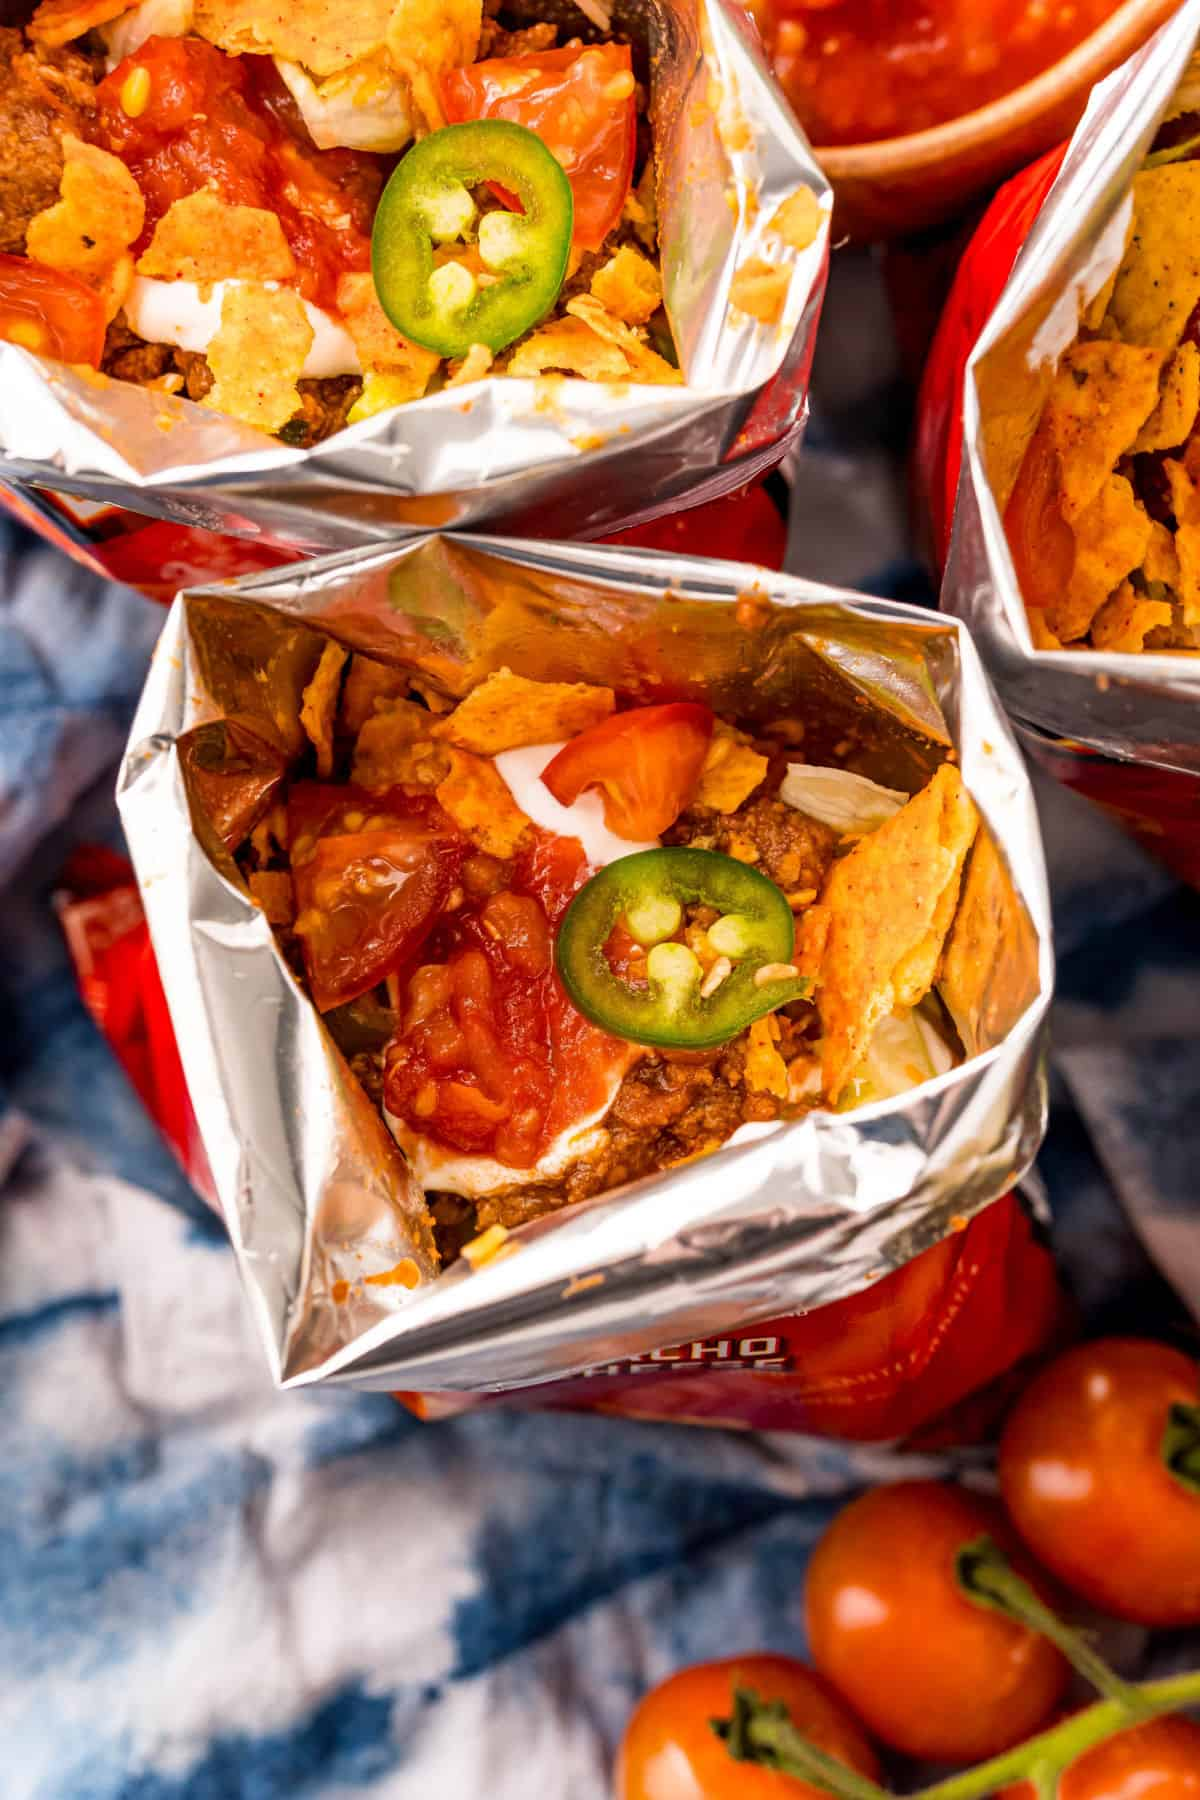 Bags of doritos with taco filling inside.